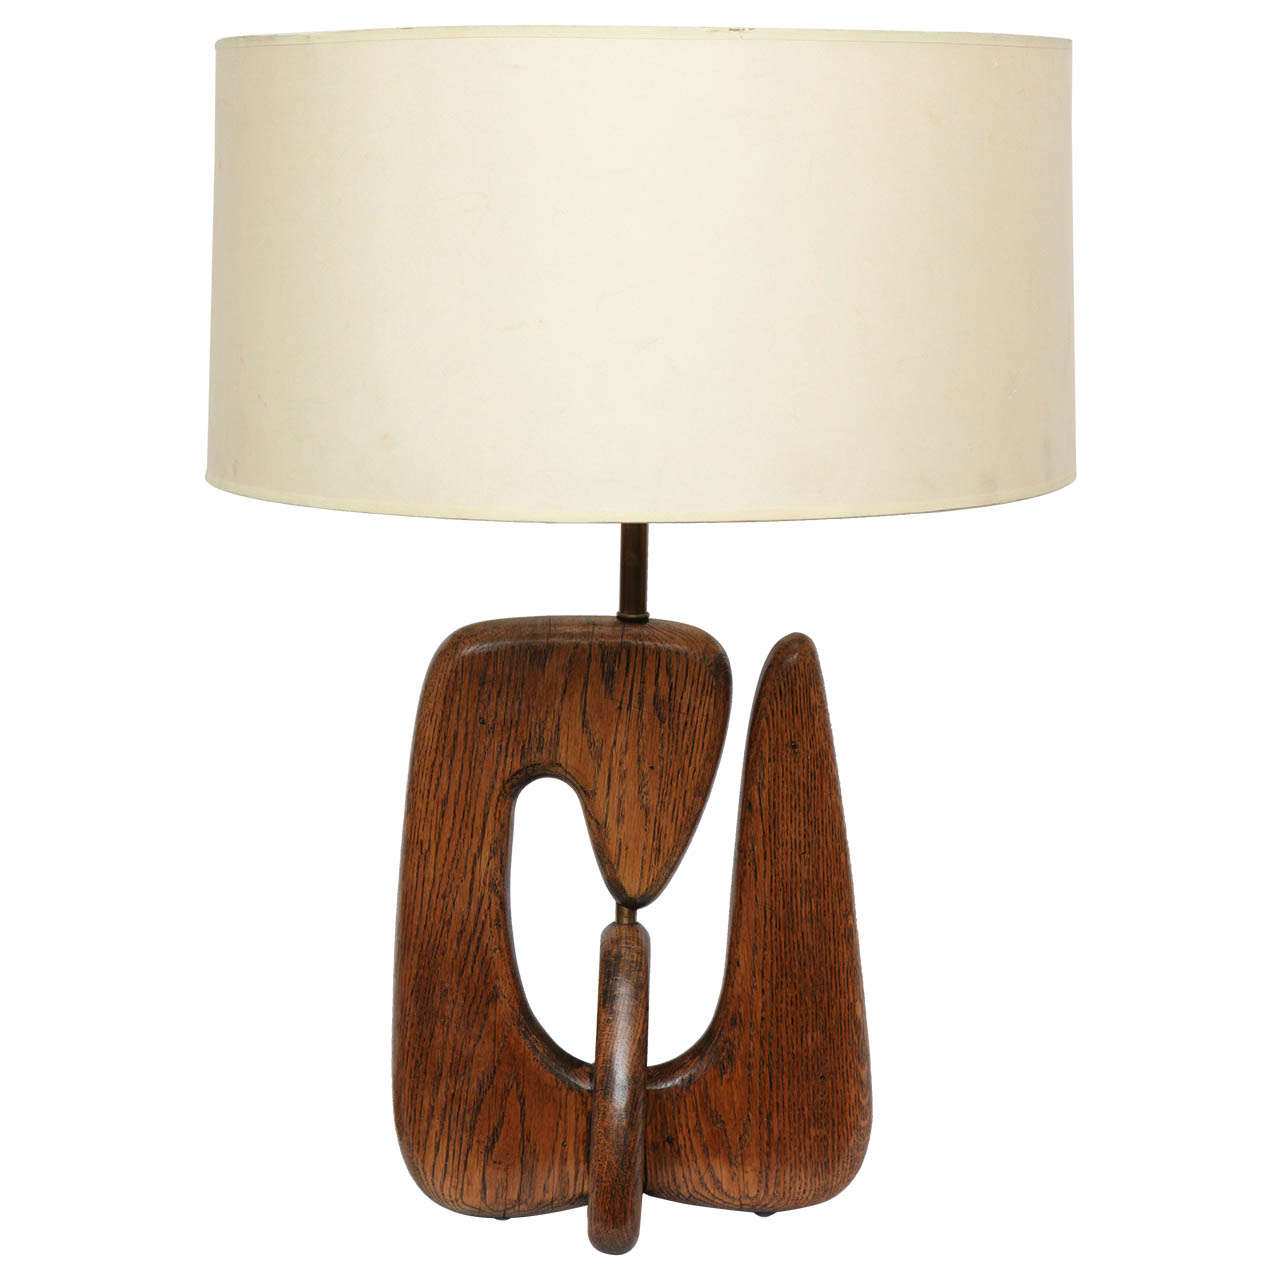 A 1950's Amorphic Table Lamp attributed to Isamu Noguchi ...